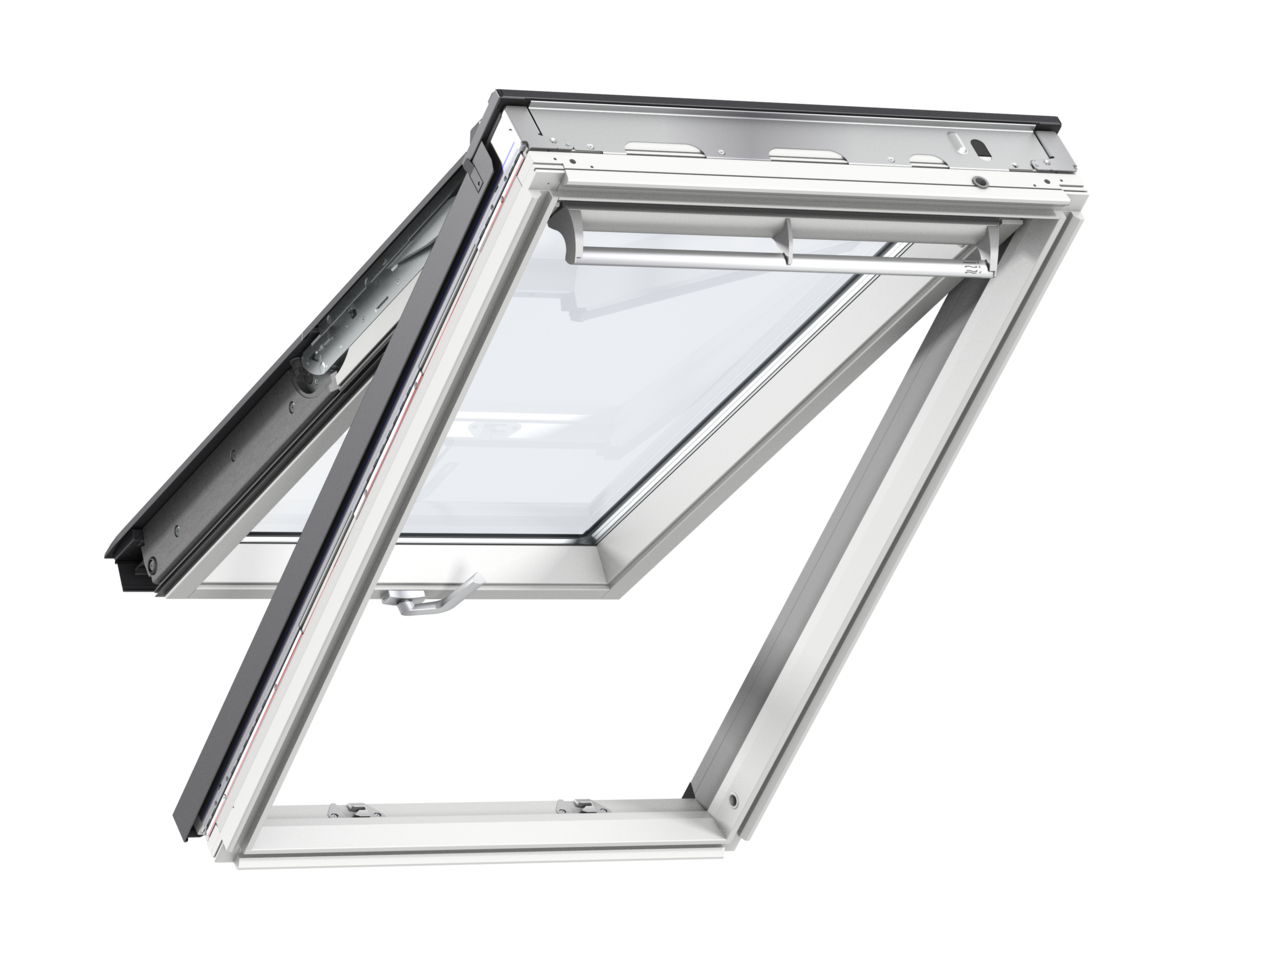 Velux GPL SK06 1140 x 1180mm Top Hung 66Pane Roof Window - White Painted